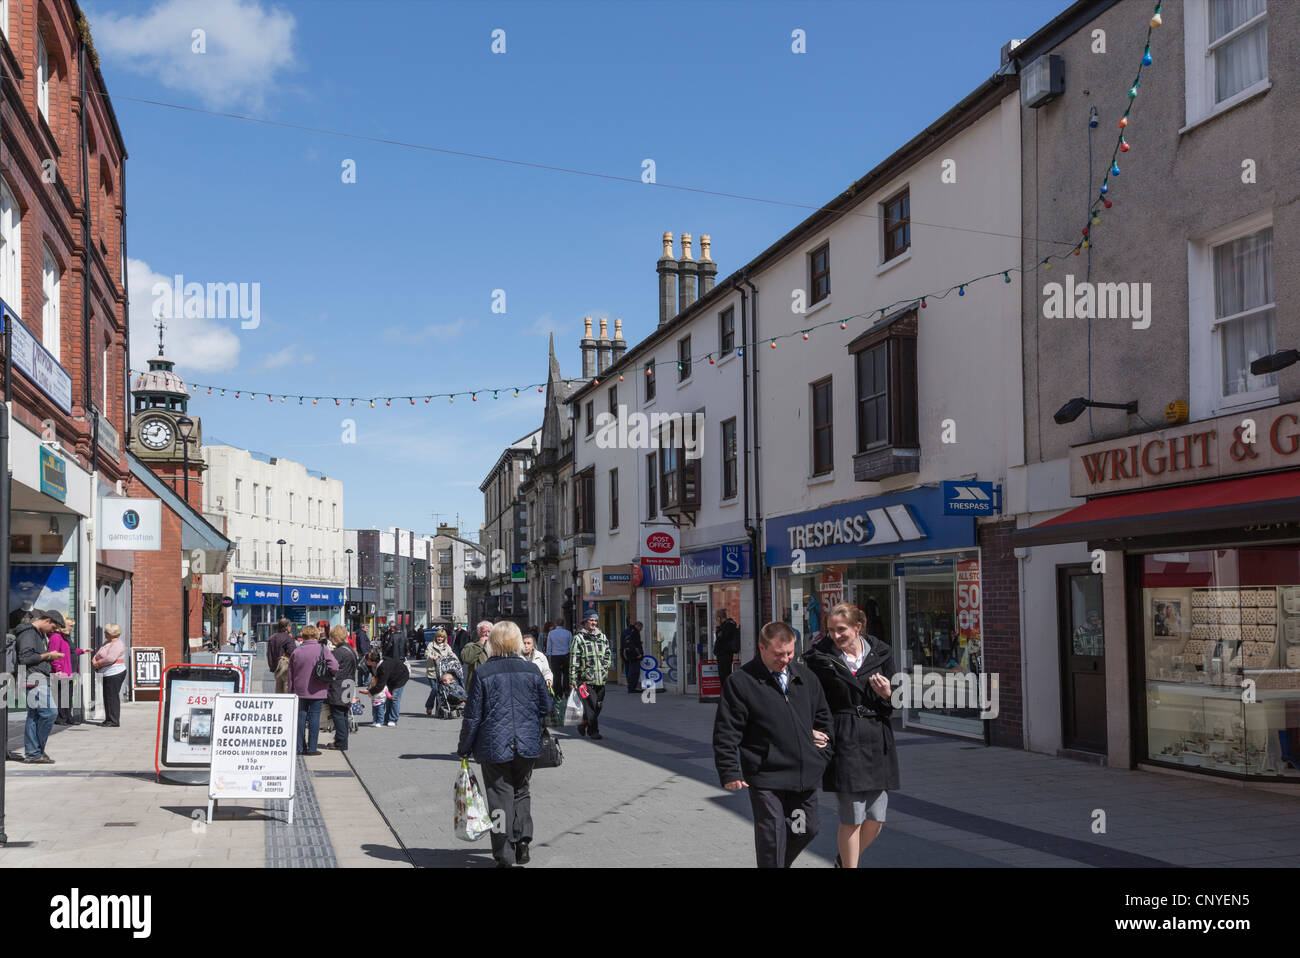 Street scene with people in the city centre shopping precinct. High Street, Bangor, Gwynedd, North Wales, UK. - Stock Image